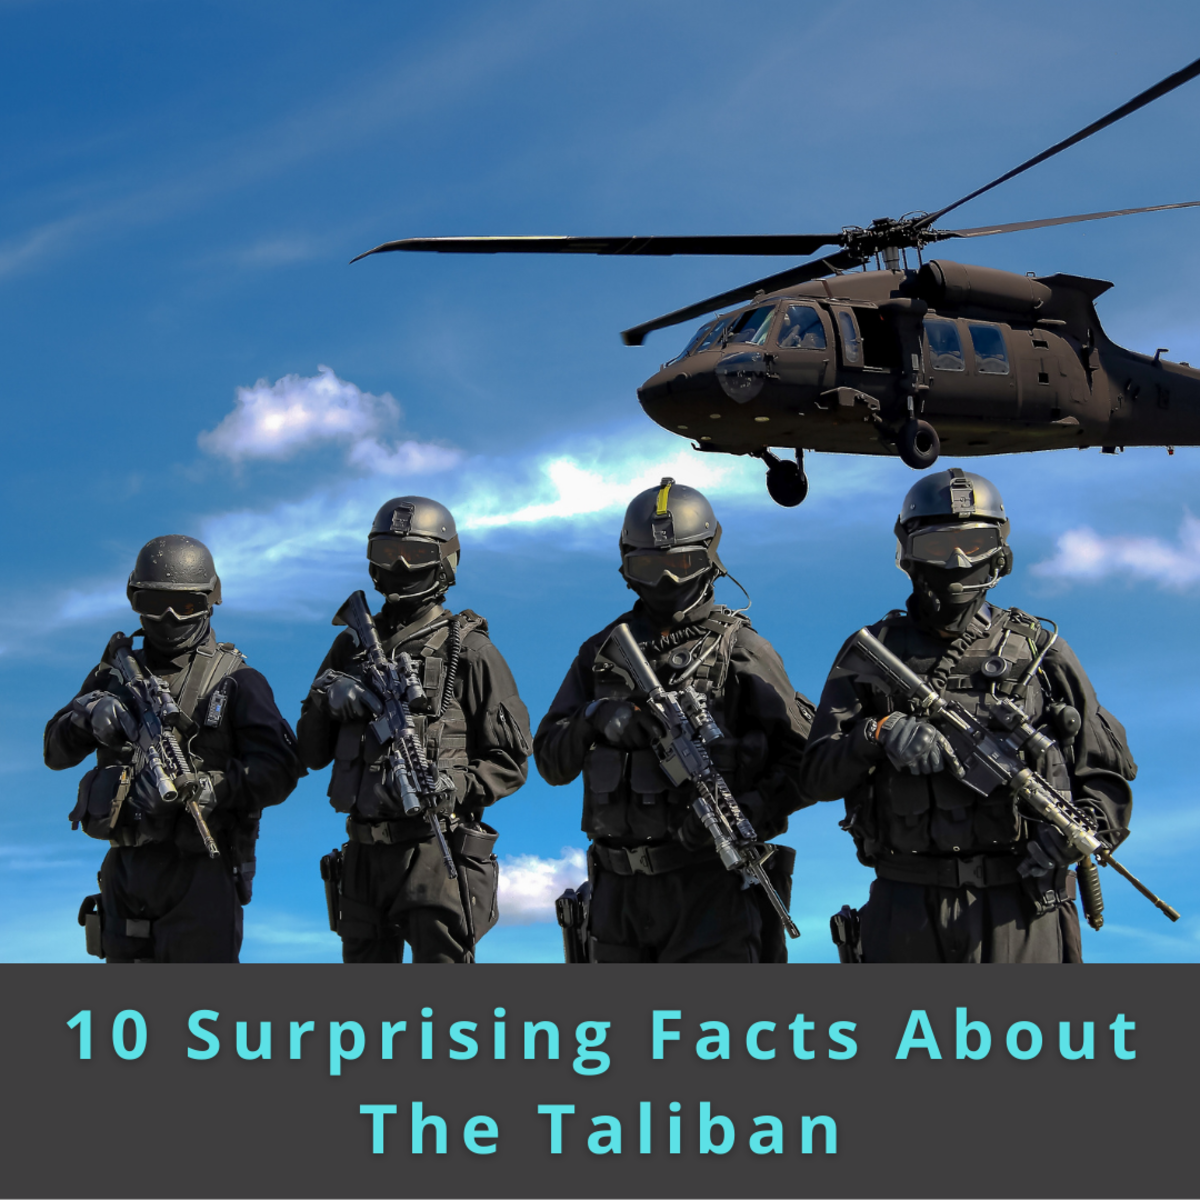 10 Big Facts About The Taliban